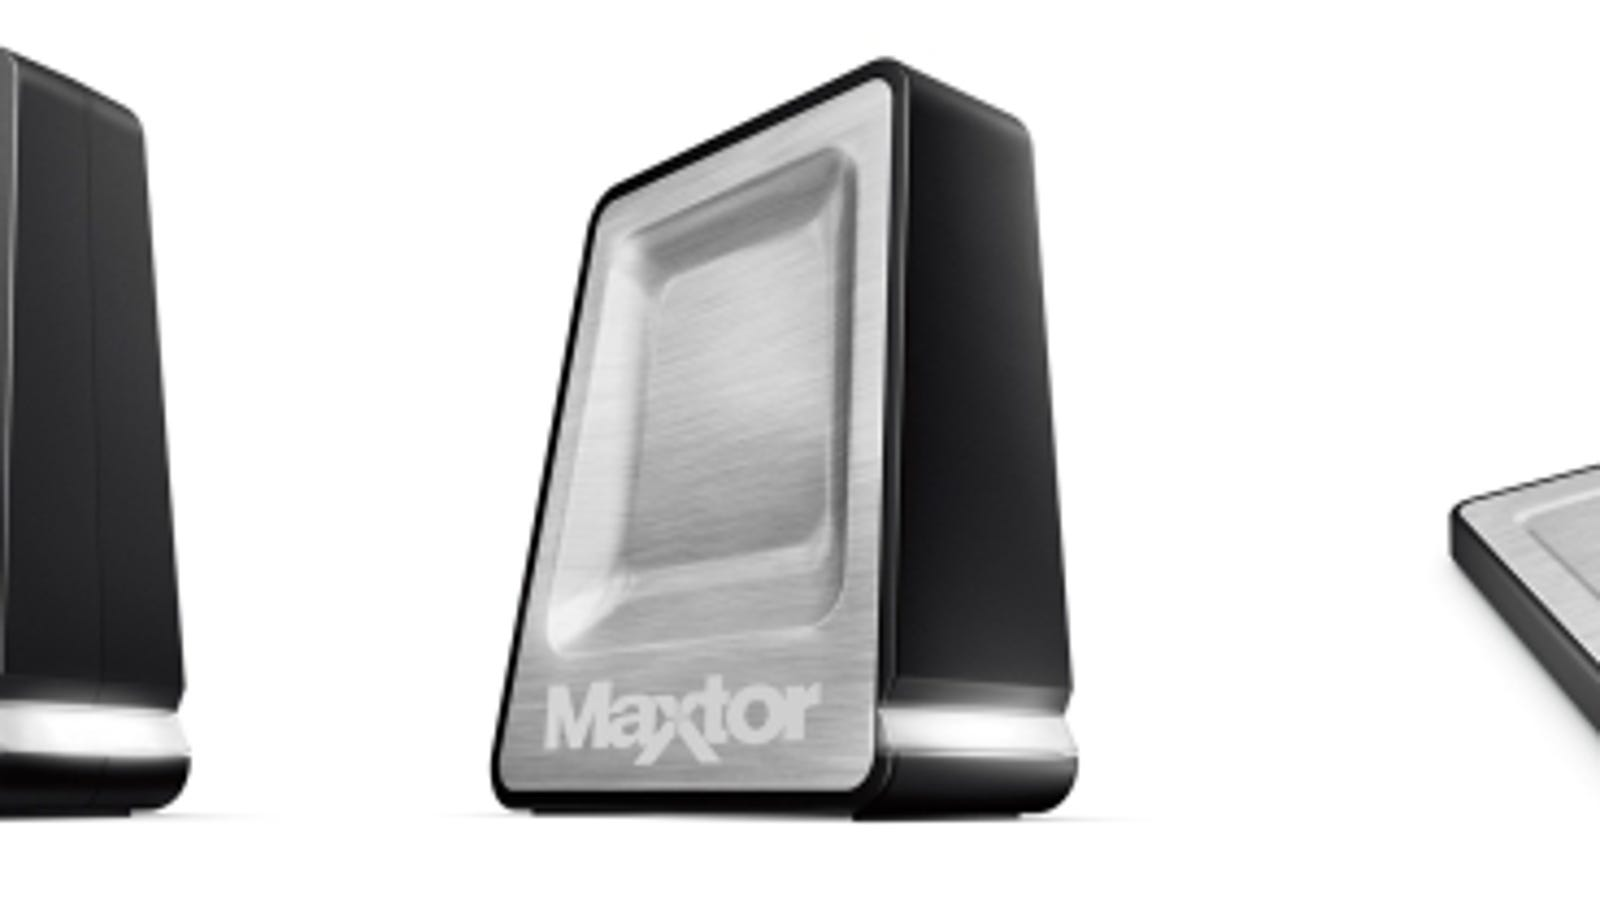 MAXTOR ONETOUCH 4 250GB DRIVERS FOR MAC